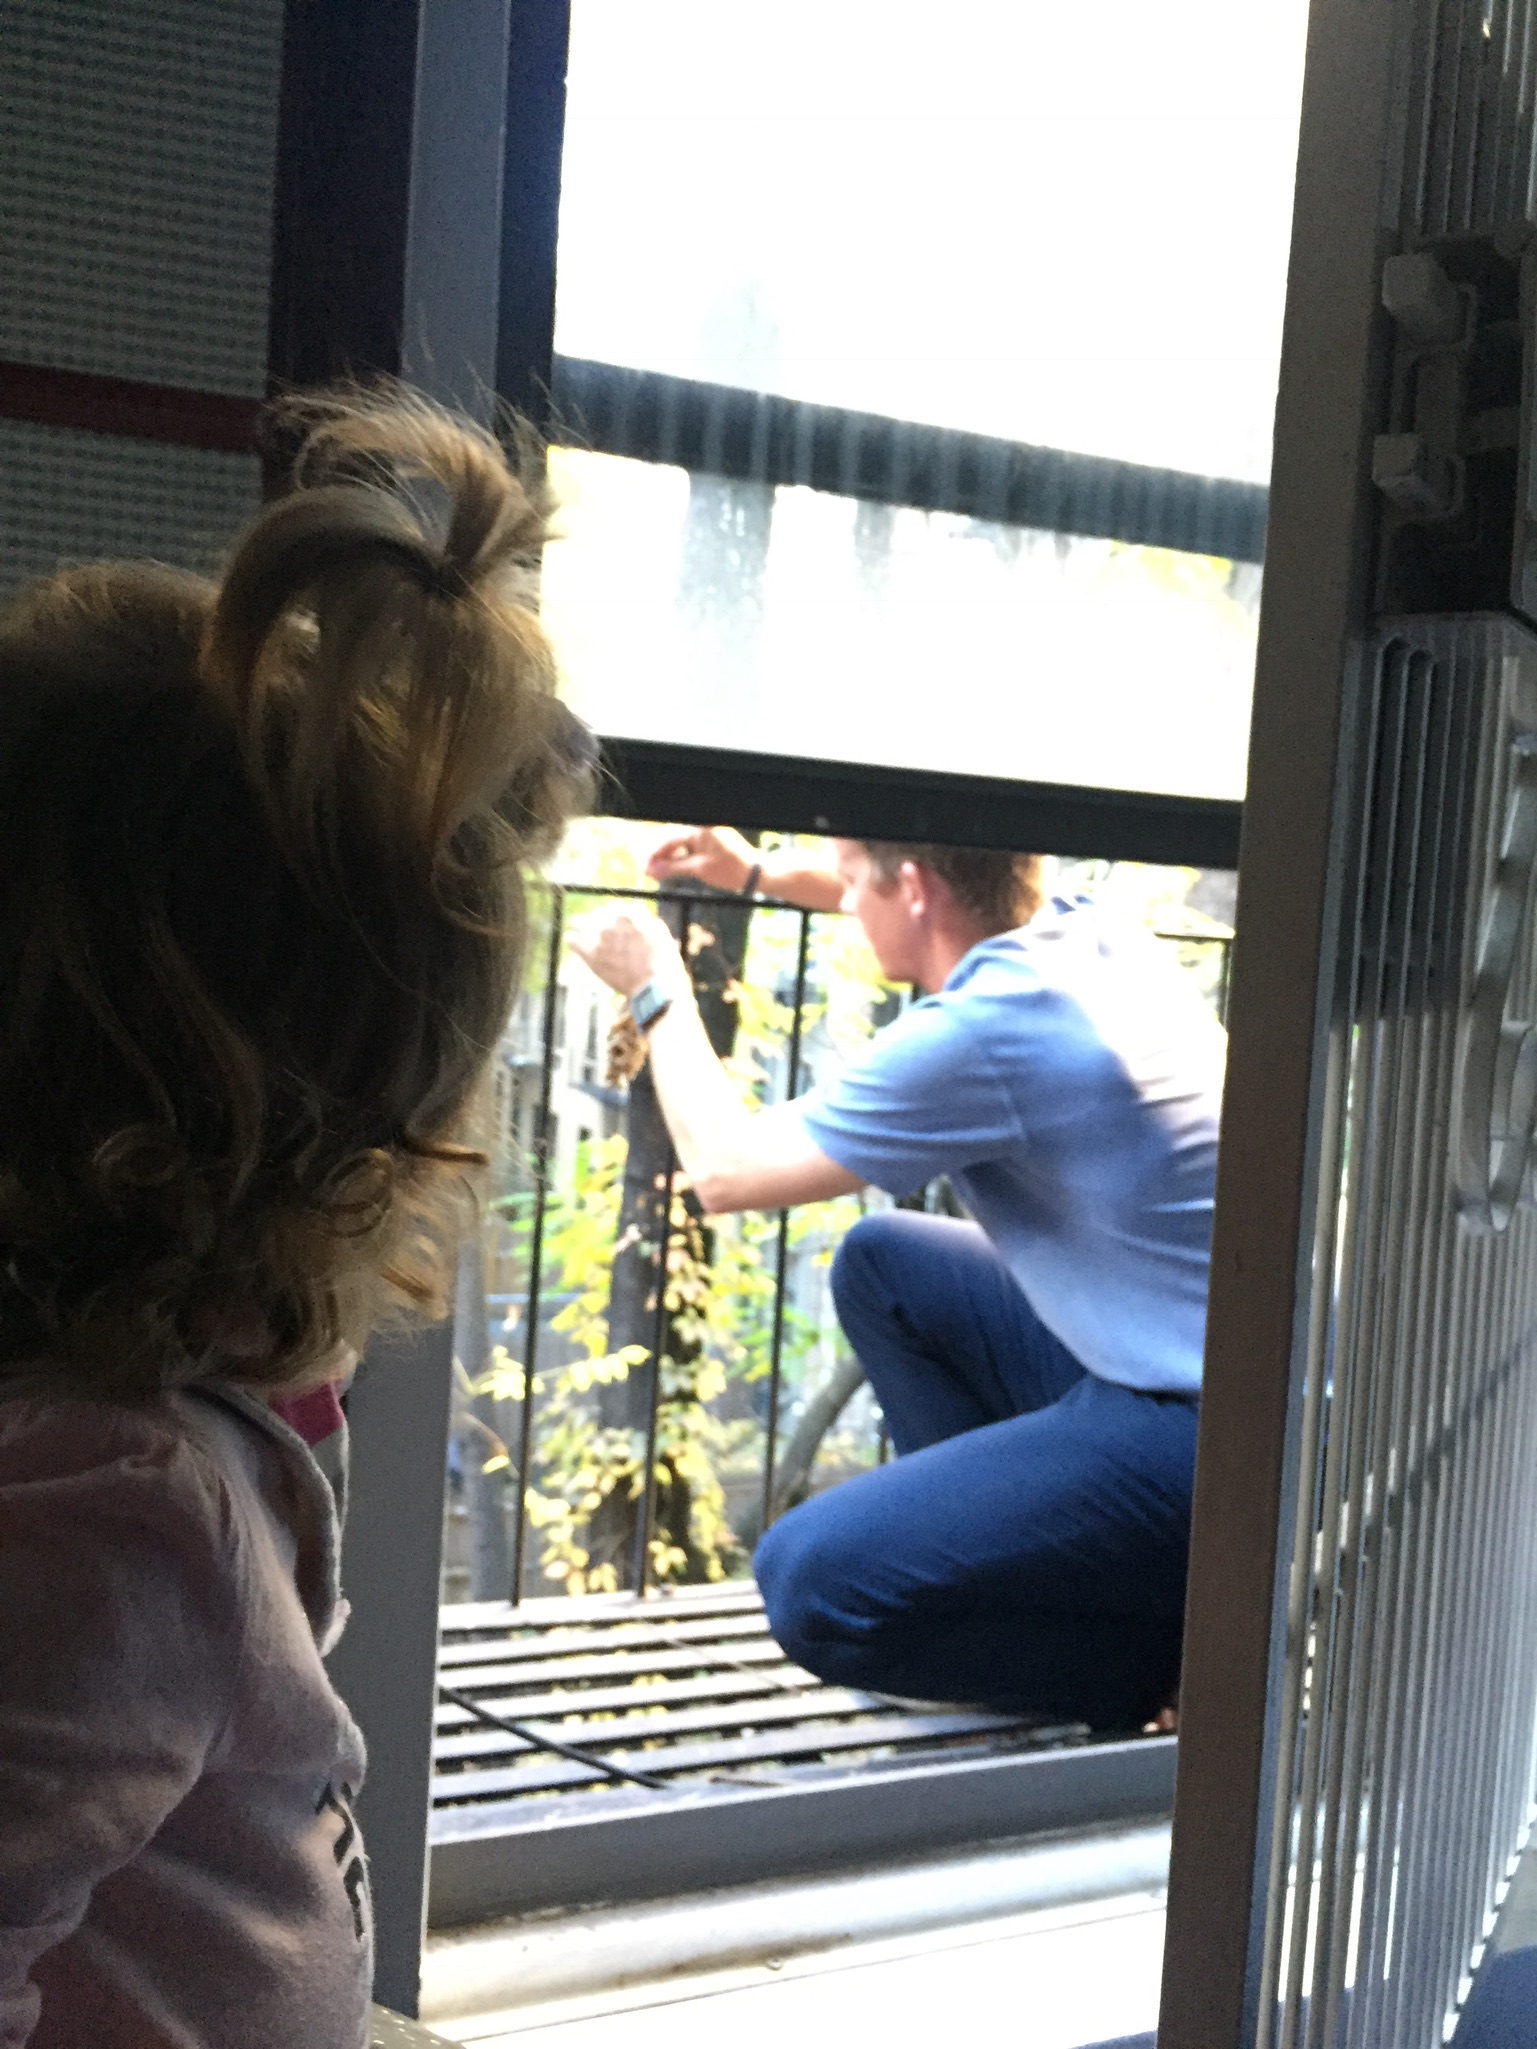 """Dada setting up a bird feeder on our balcony so Lucie could watch them out her window. She had already seen several before he did this and would call out, """"Biiird! Biiiird!"""" So now we are hoping this will bring a few more our way before winter. (We also discovered that this is not a fire escape like we initially thought, so we need to figure out an escape plan now. Eek!)"""